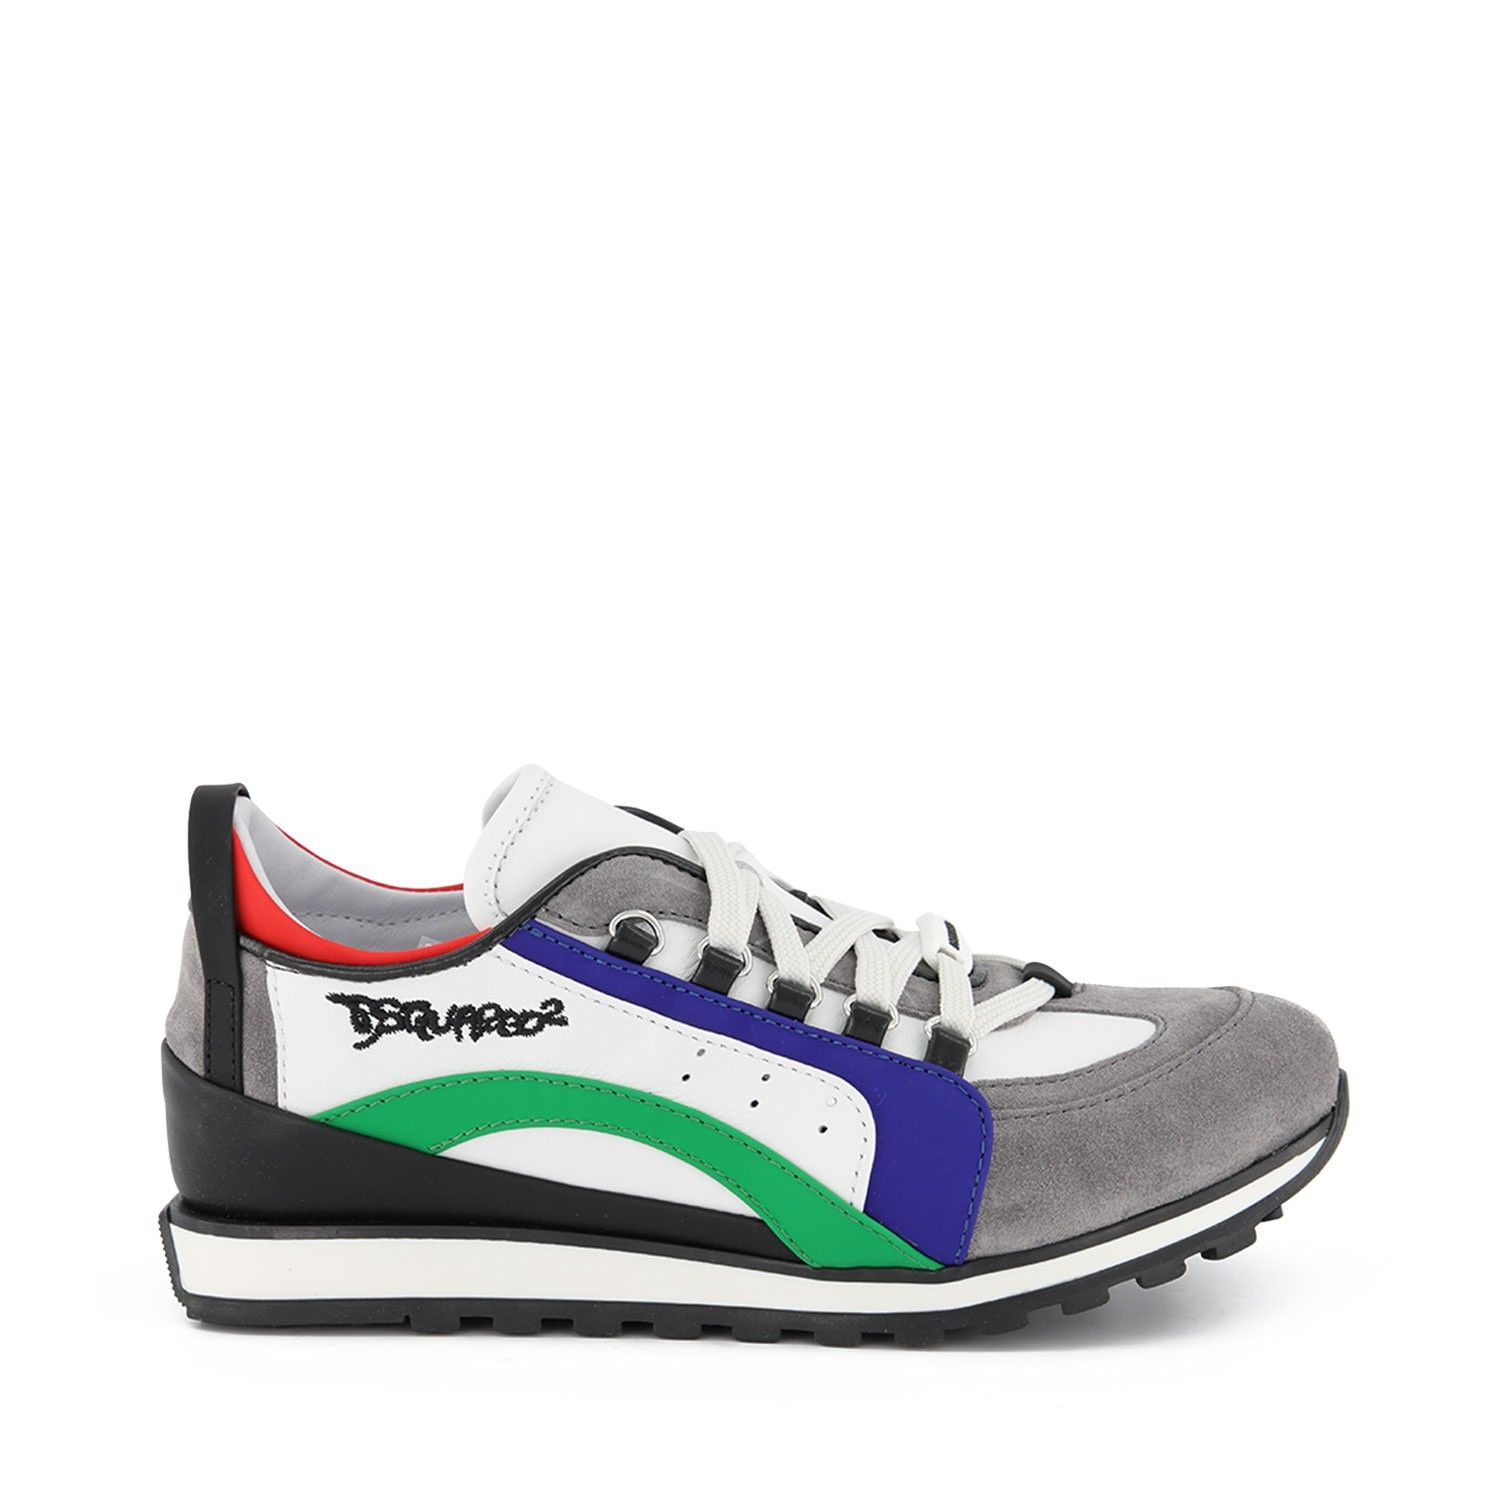 Picture of Dsquared2 63511 kids sneakers green